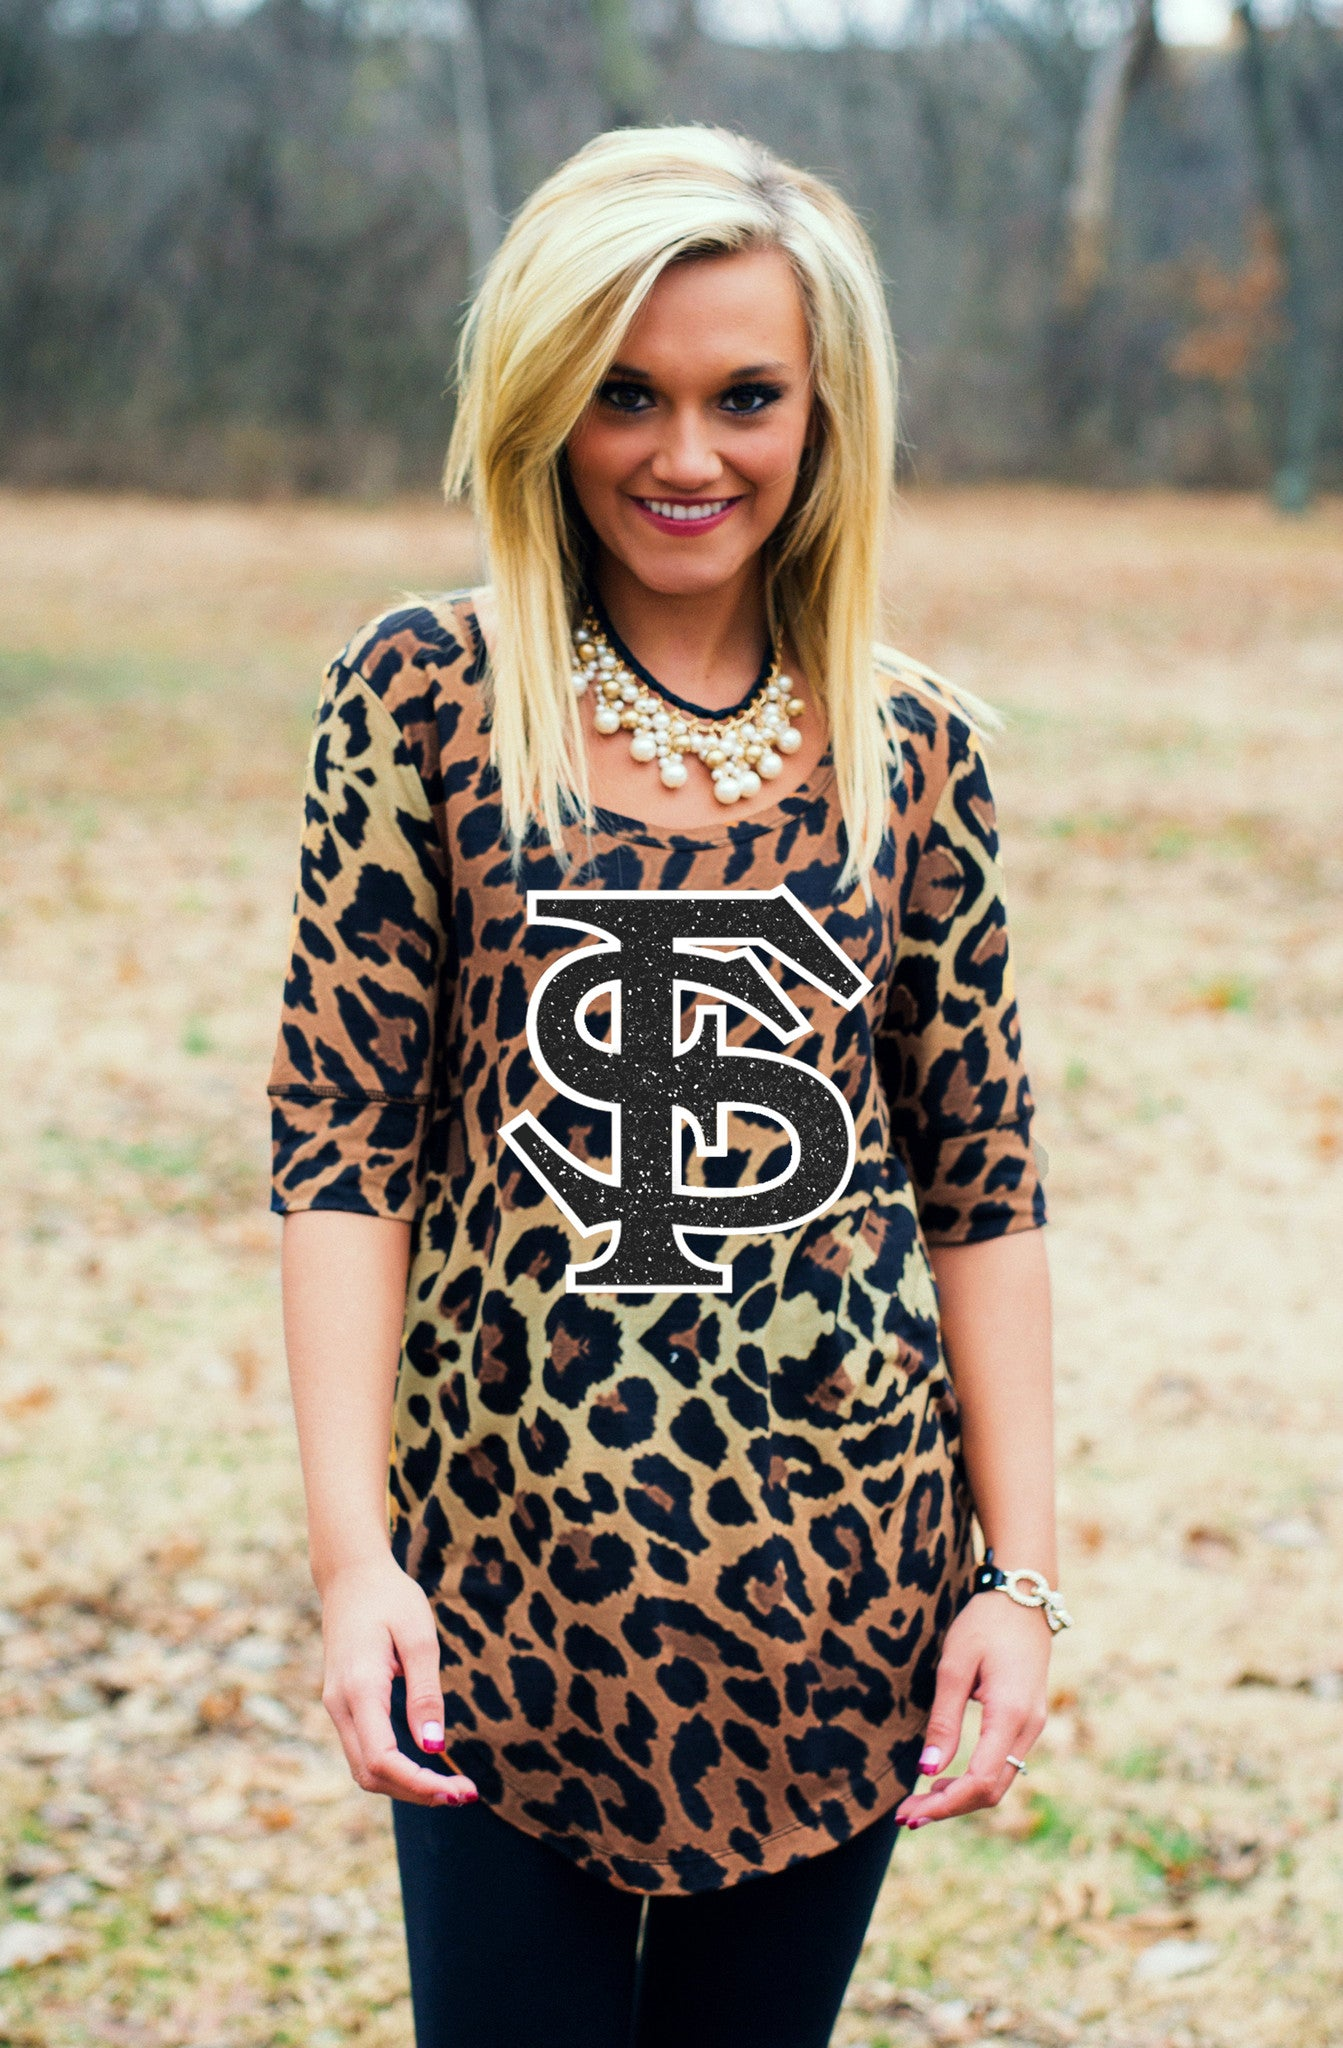 Leopard Print FSU Half Sleeve Tee Tunic Game Day Couture - Bows and Arrows FSU Women's Game Day Dresses and Apparel